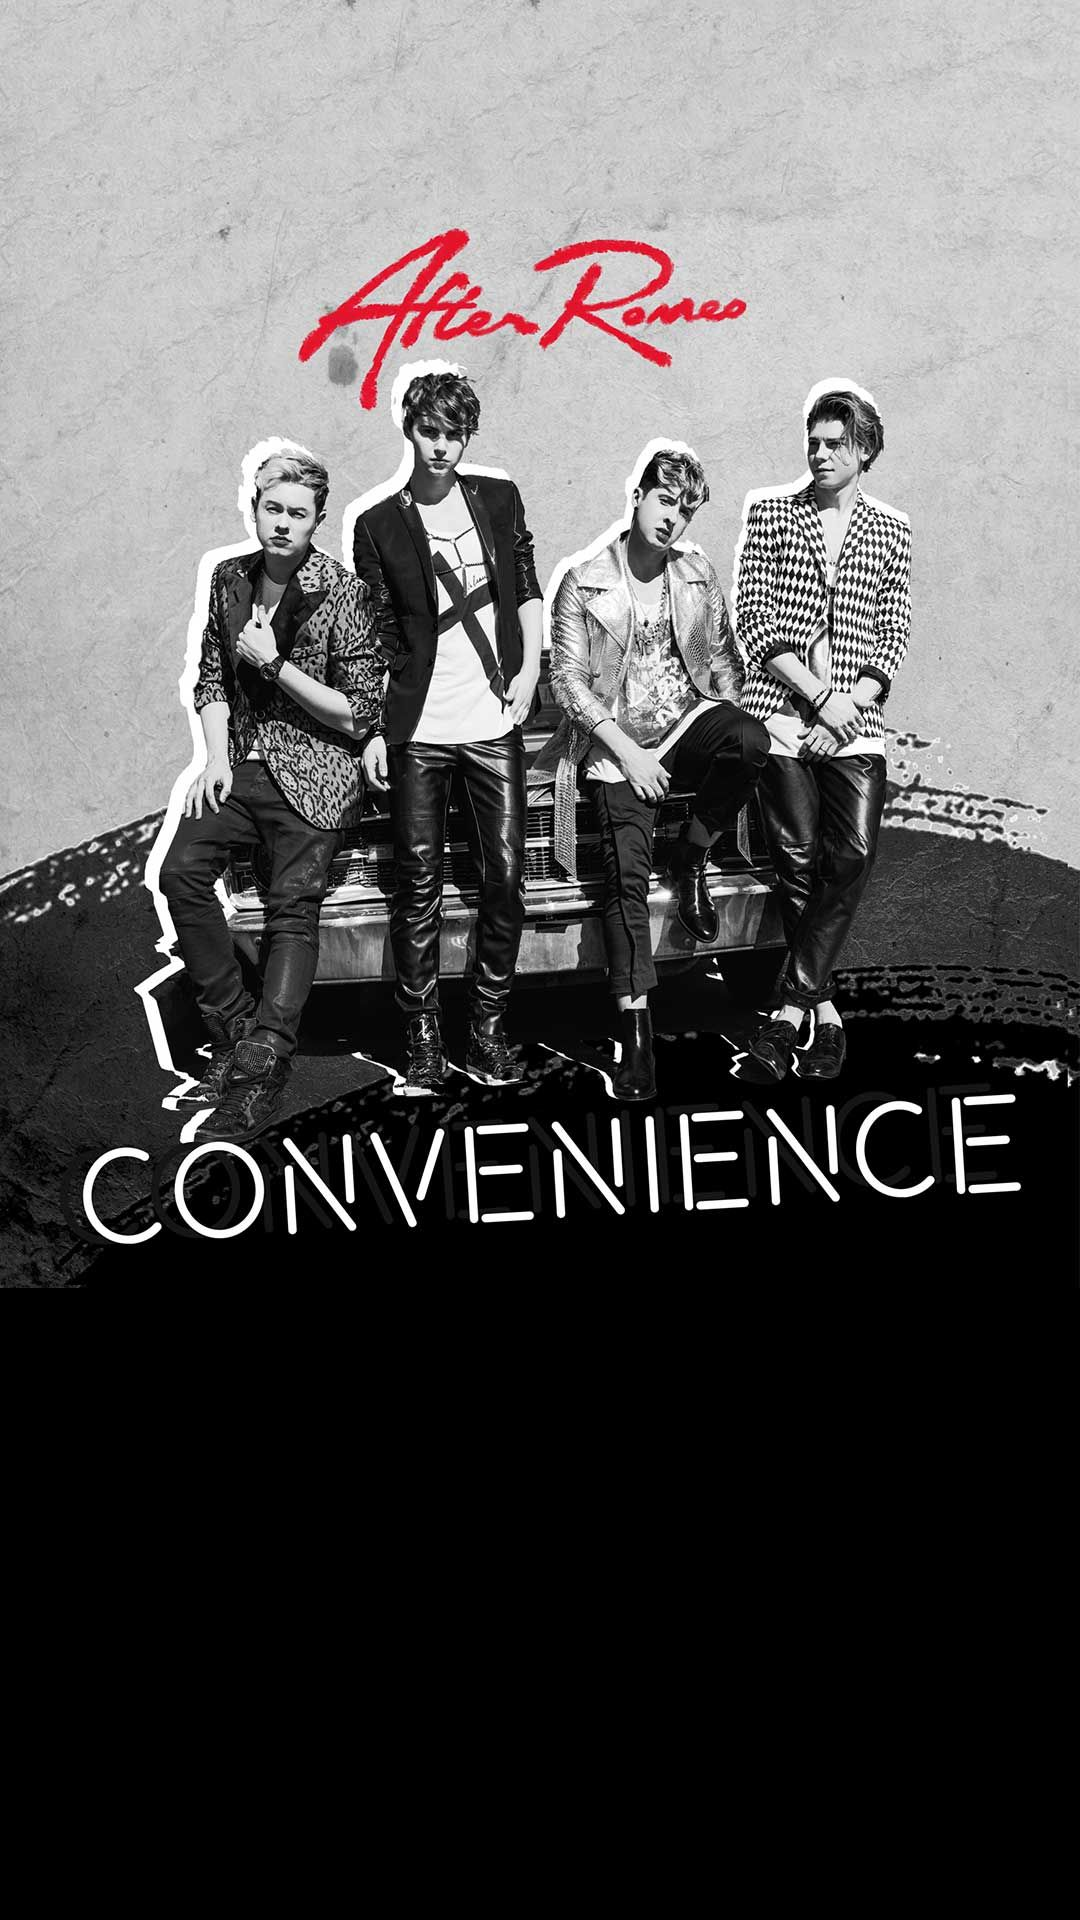 Convenience | Good Things | After Romeo